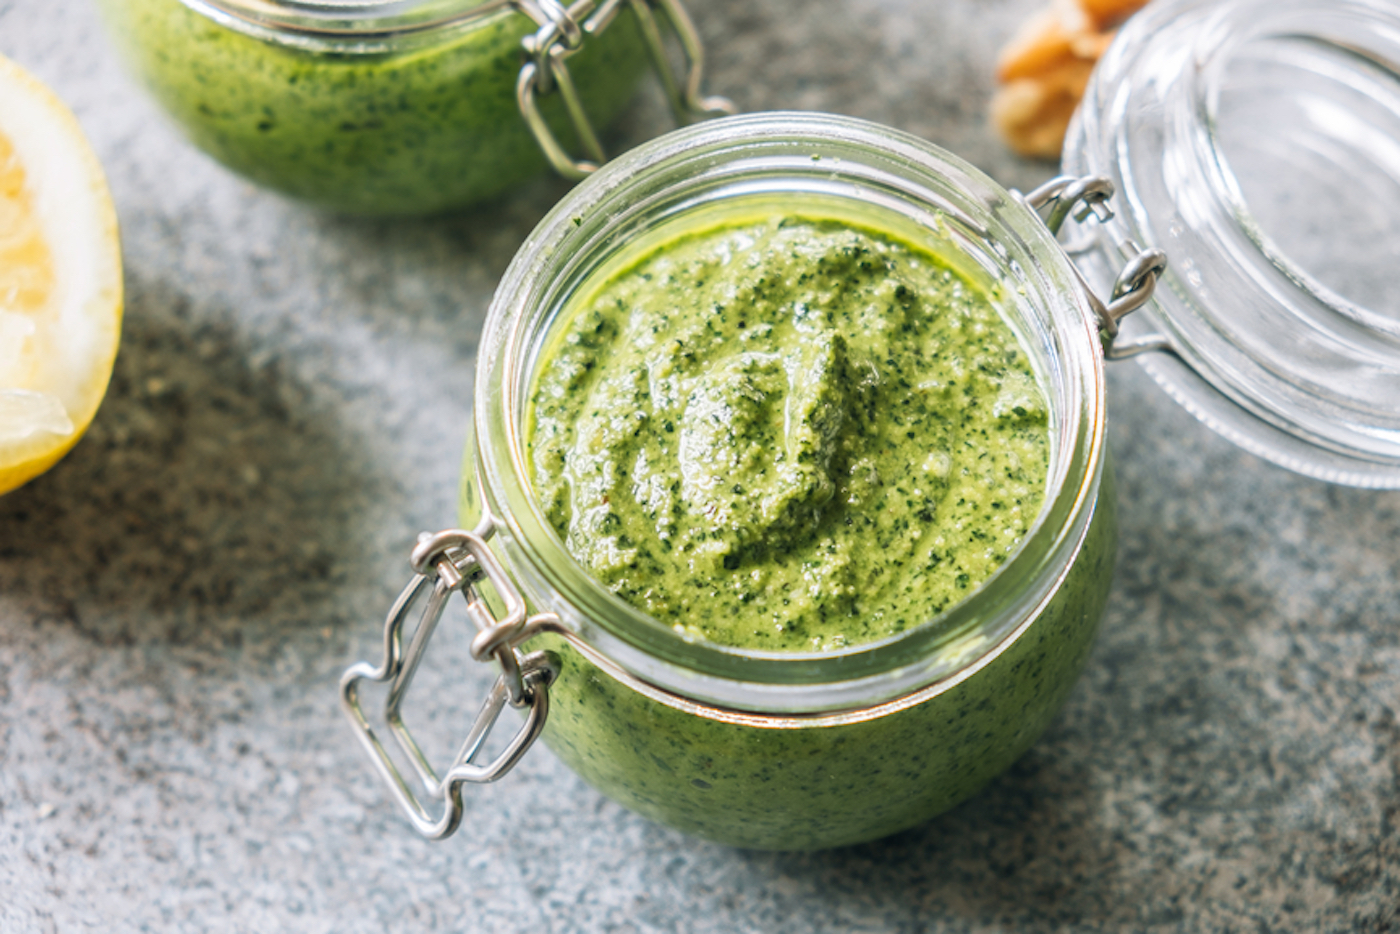 Thumbnail for This 5-Minute Pesto Recipe Is So Delicious You May Never Buy Ready-Made Sauce Again